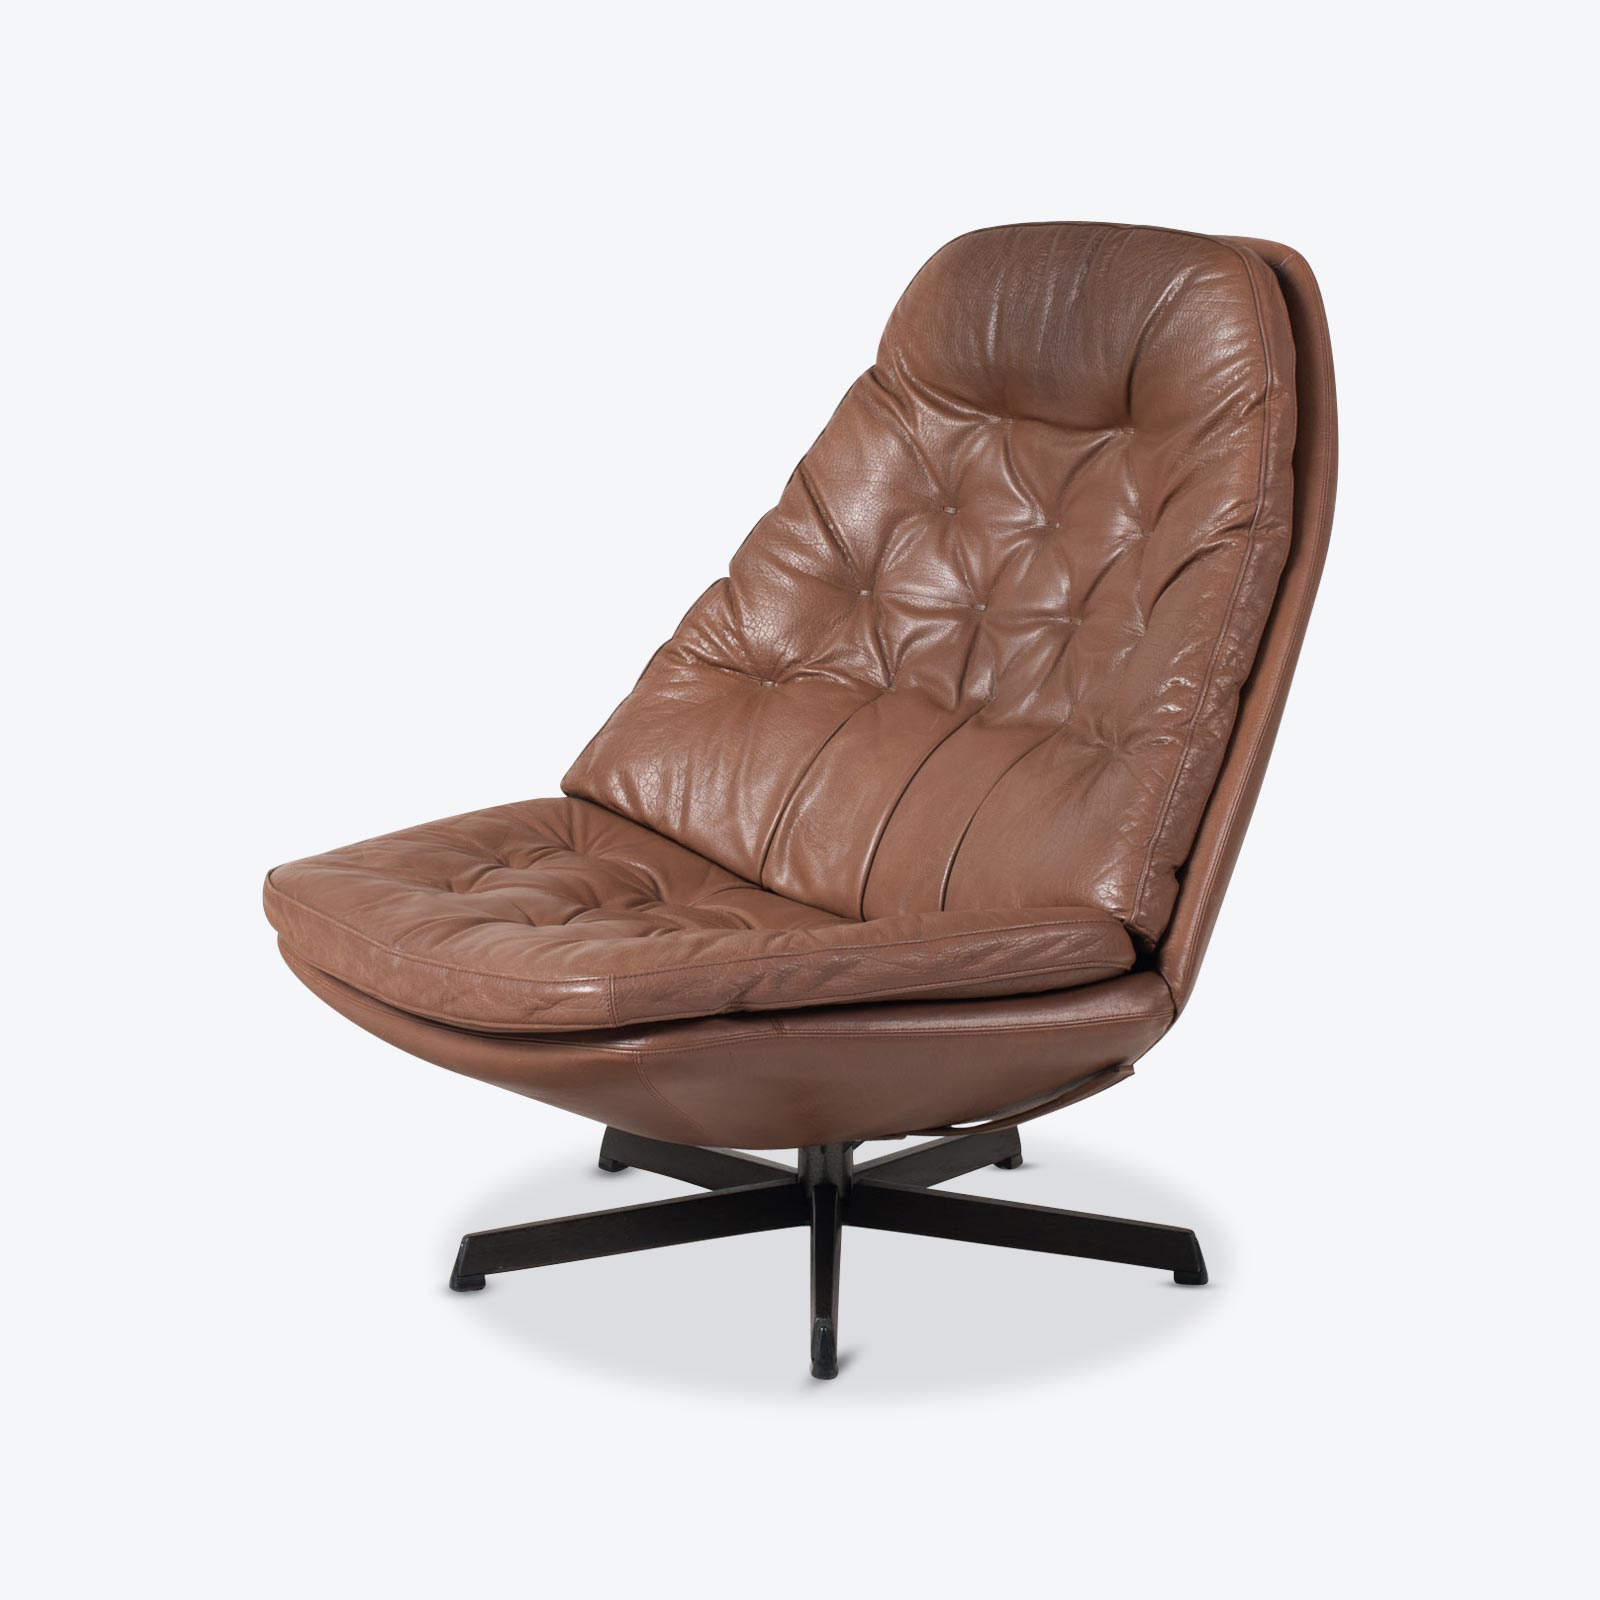 Ms68 Armchair By Madsen Schubell In Brown Leather 1960s Denmark